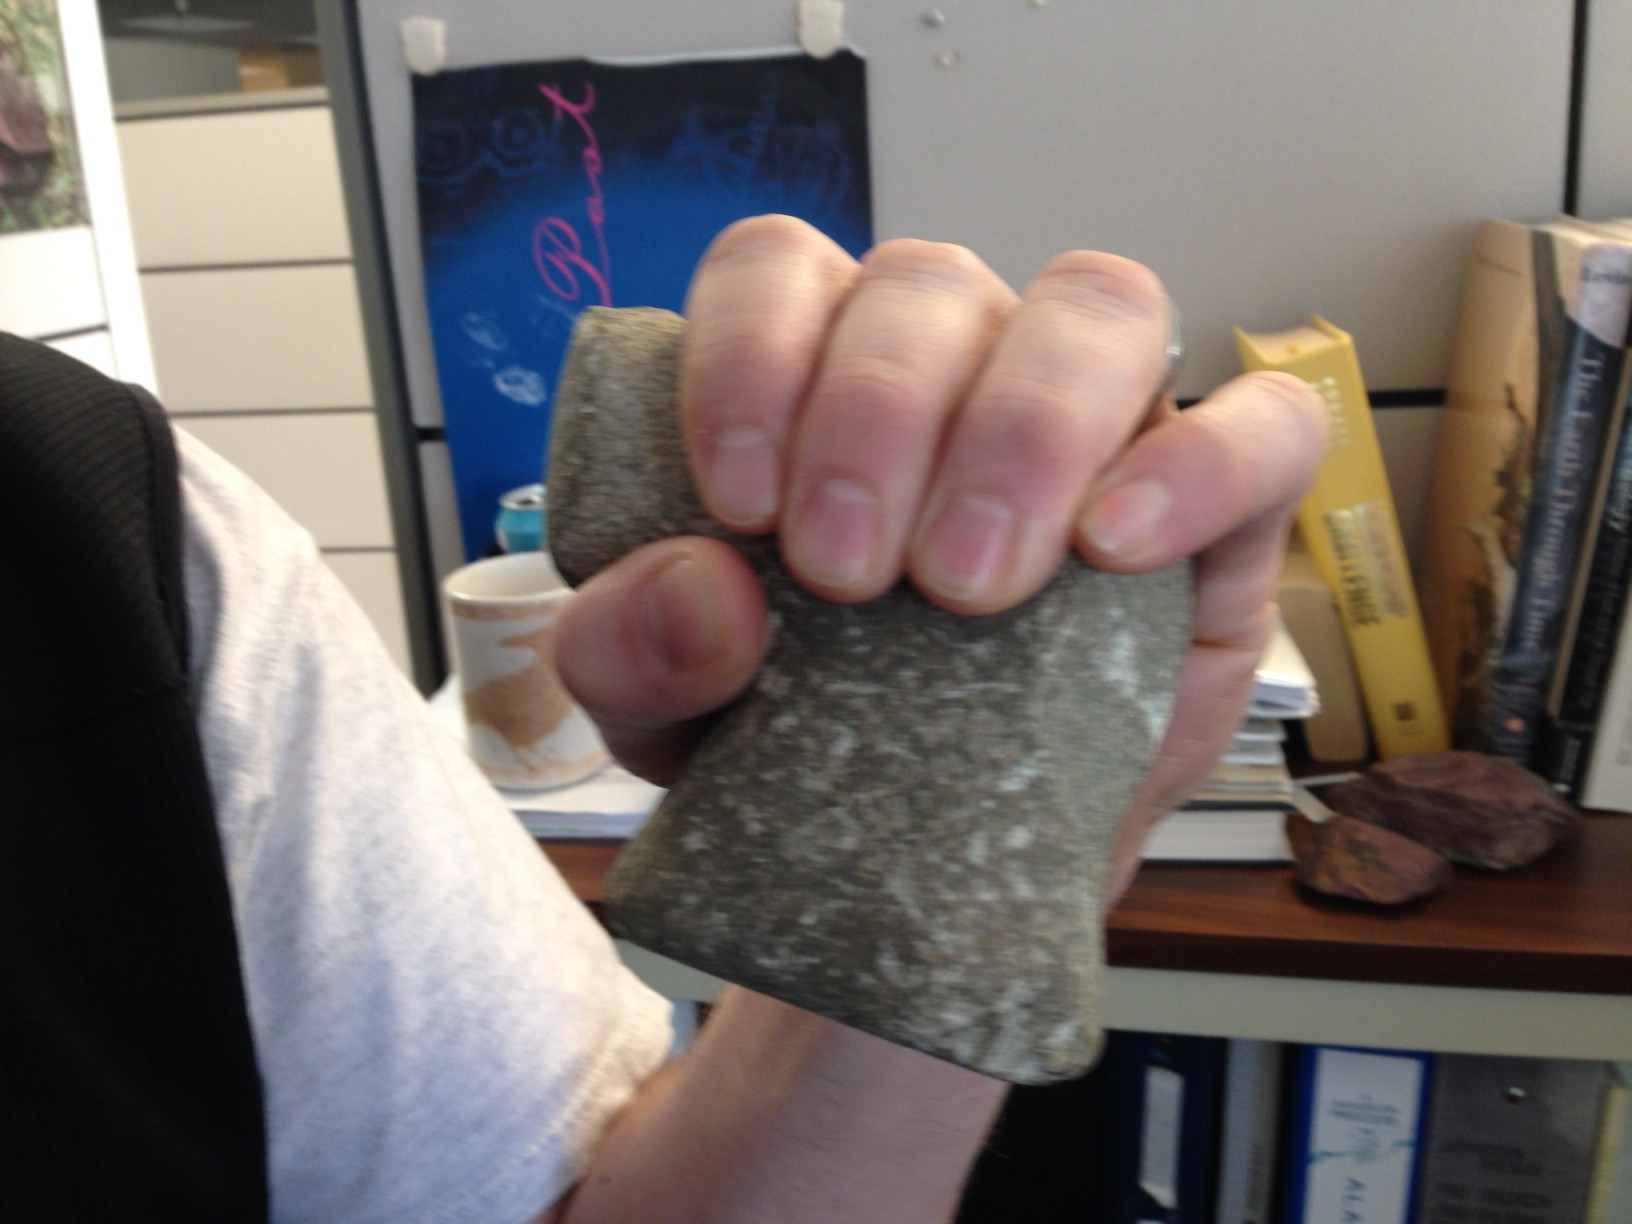 Improbable archaeology: Stone tool found in Sitka landslide